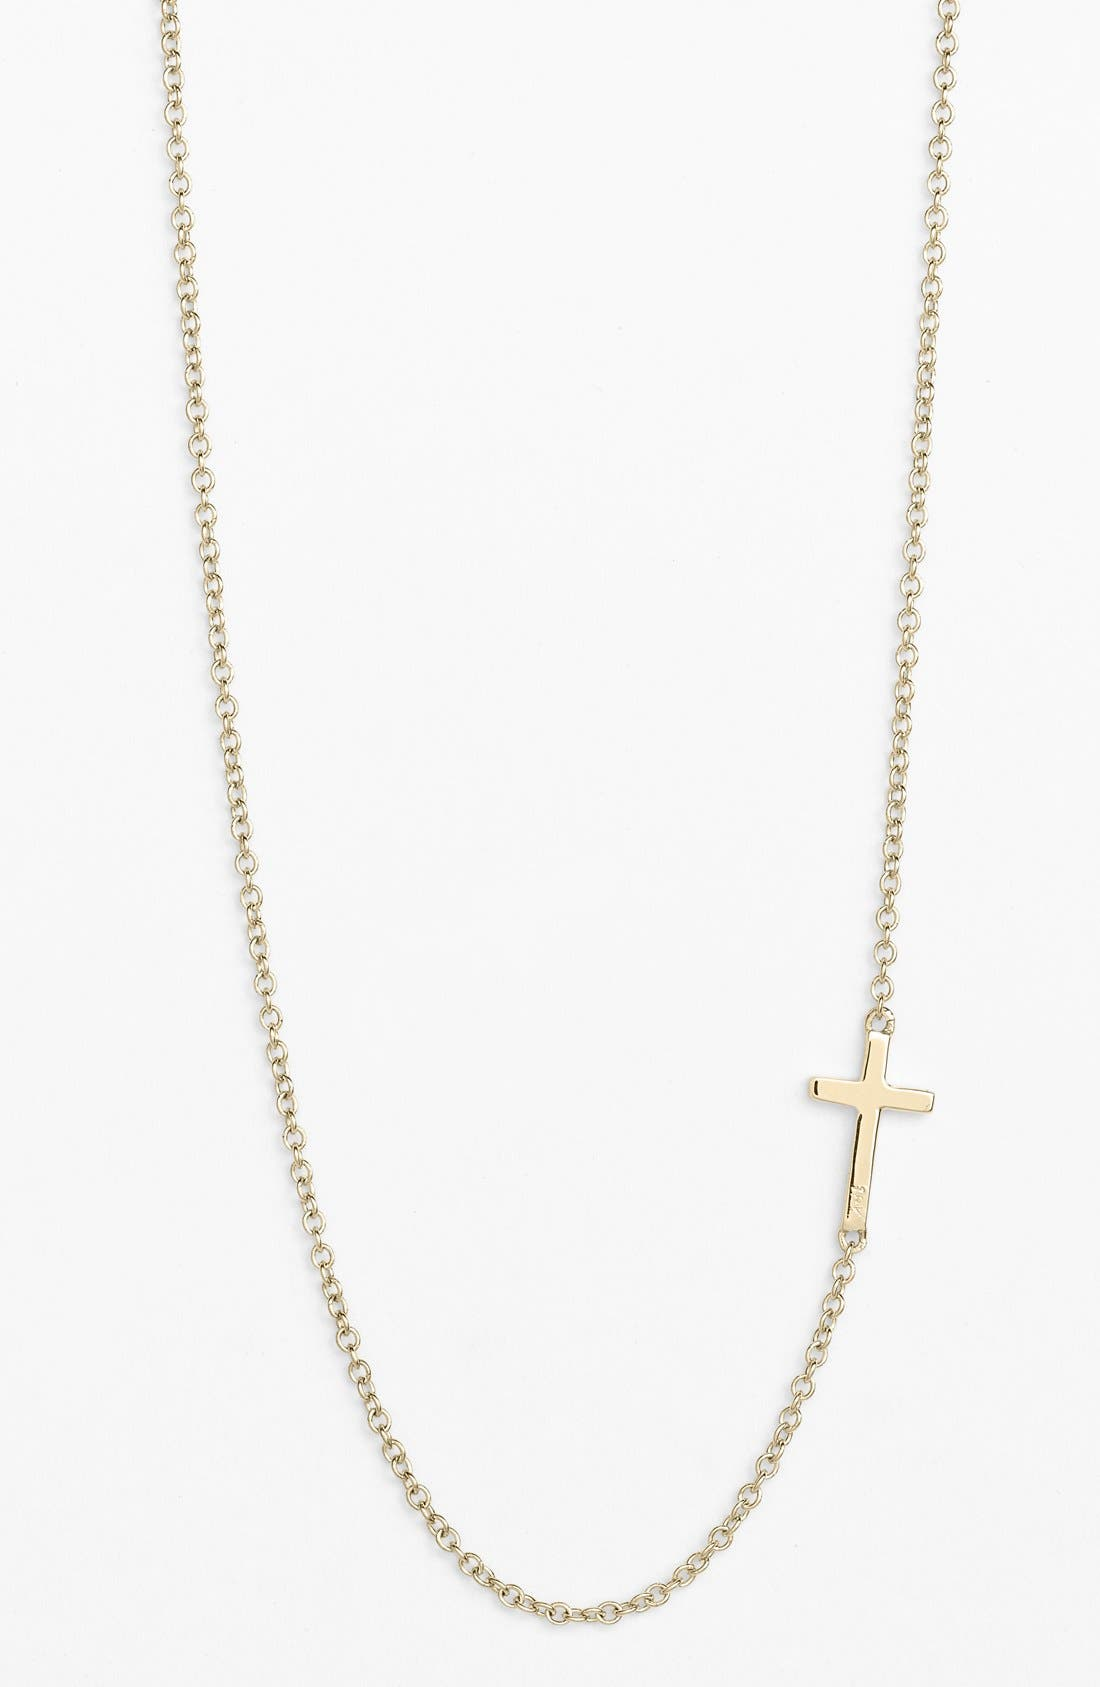 Main Image - Bony Levy Cross Station Necklace (Nordstrom Exclusive)